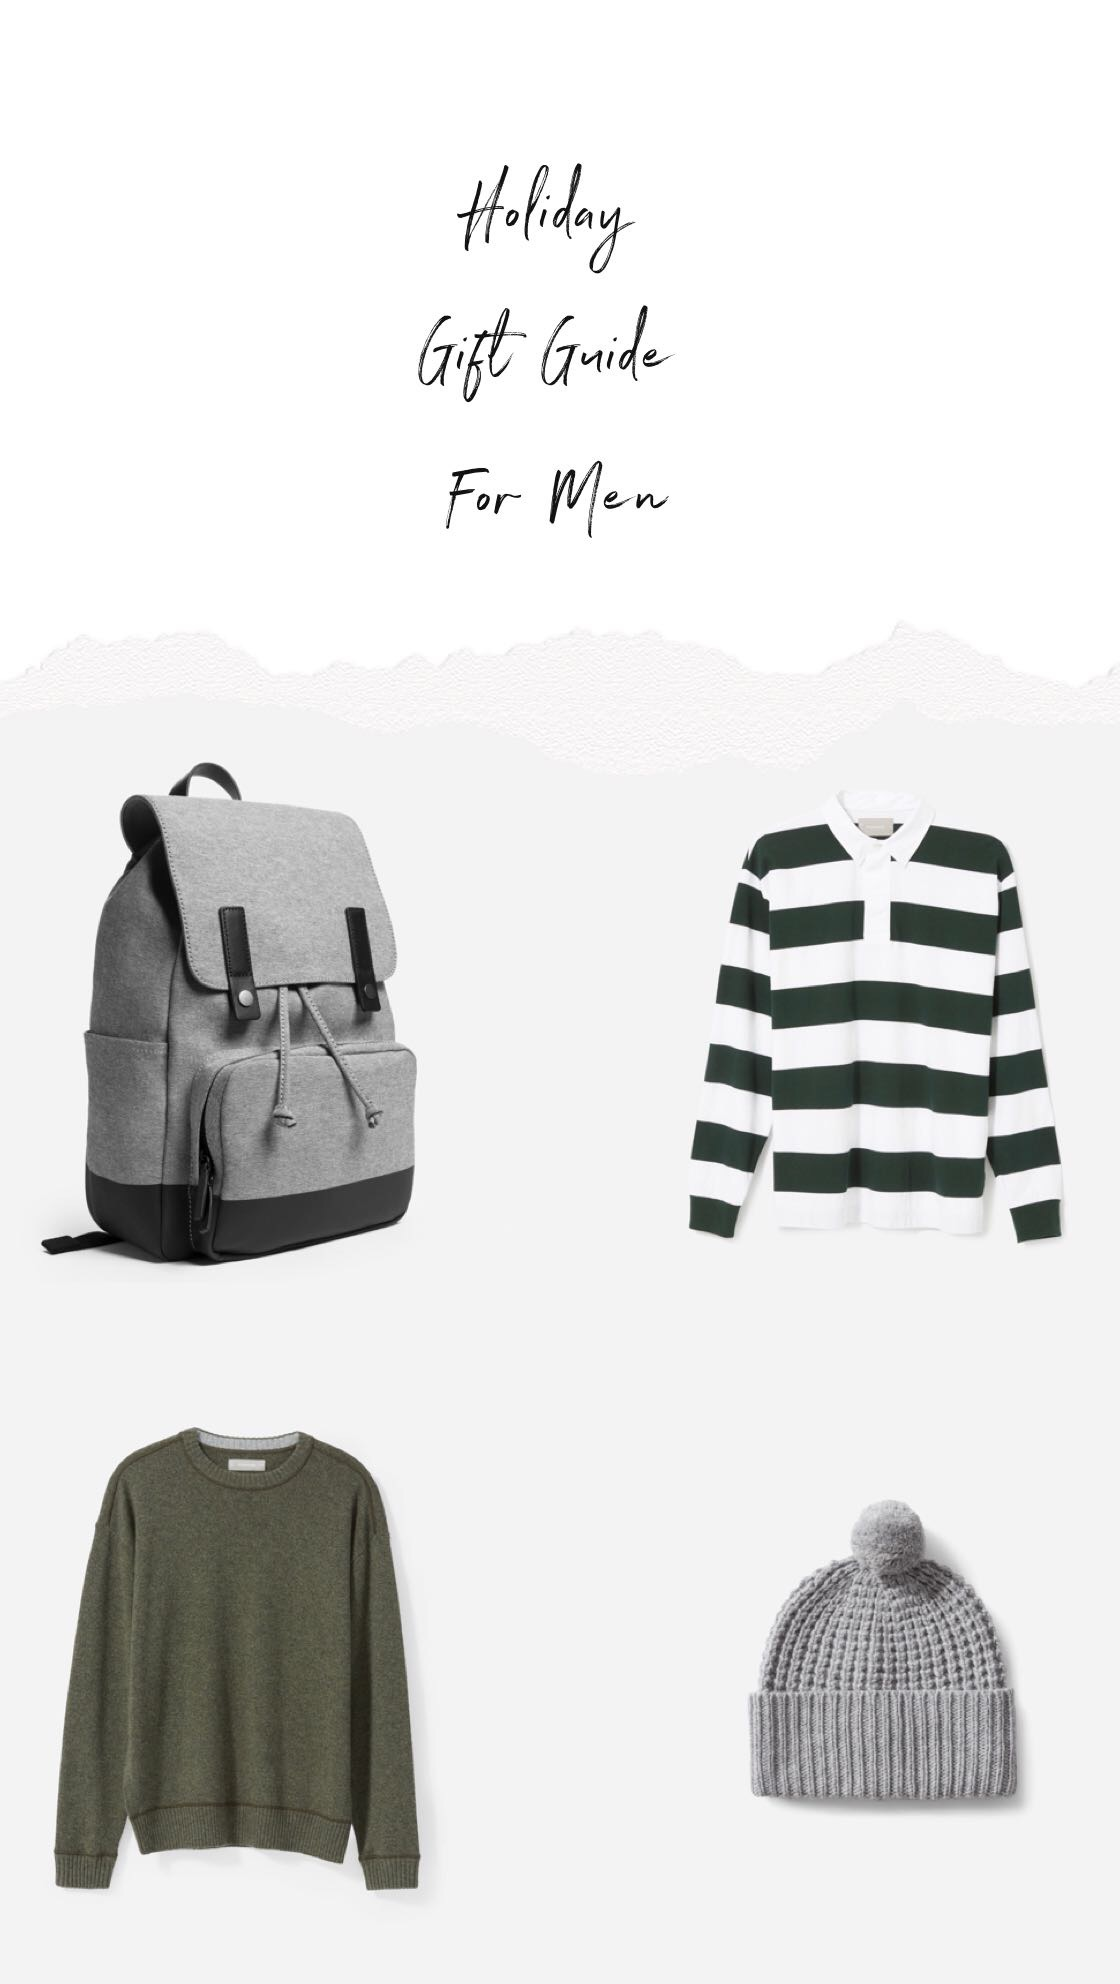 Holiday gift ideas for men 2018 – Meaningful stylish gifts for him